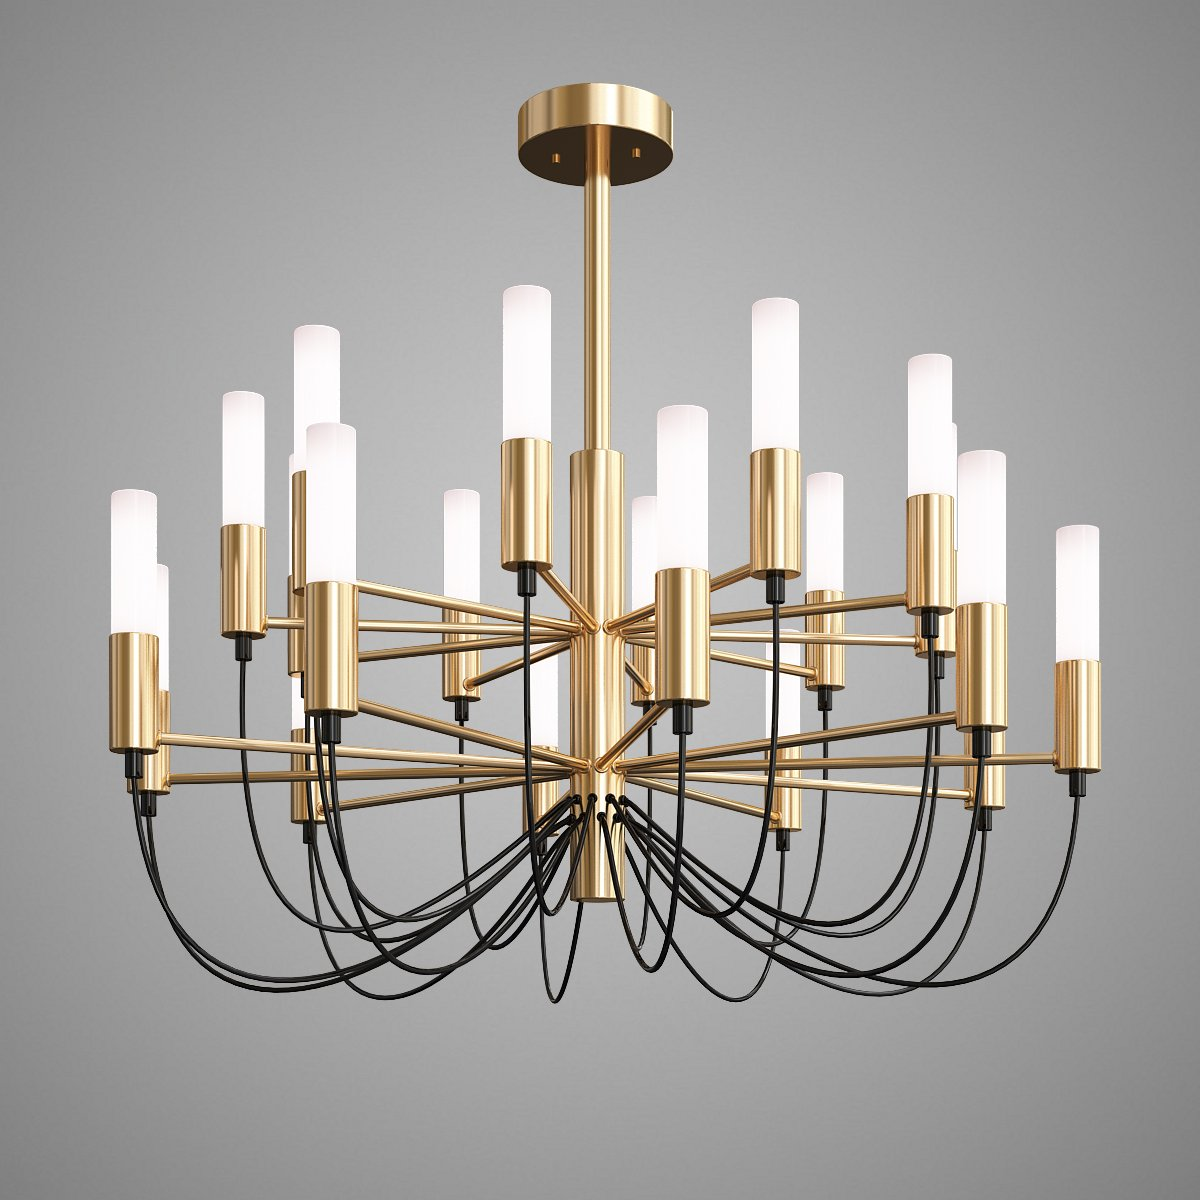 Luxury lustre gold g9 led chandelier 3d model in ceiling lights 3dexport aloadofball Image collections